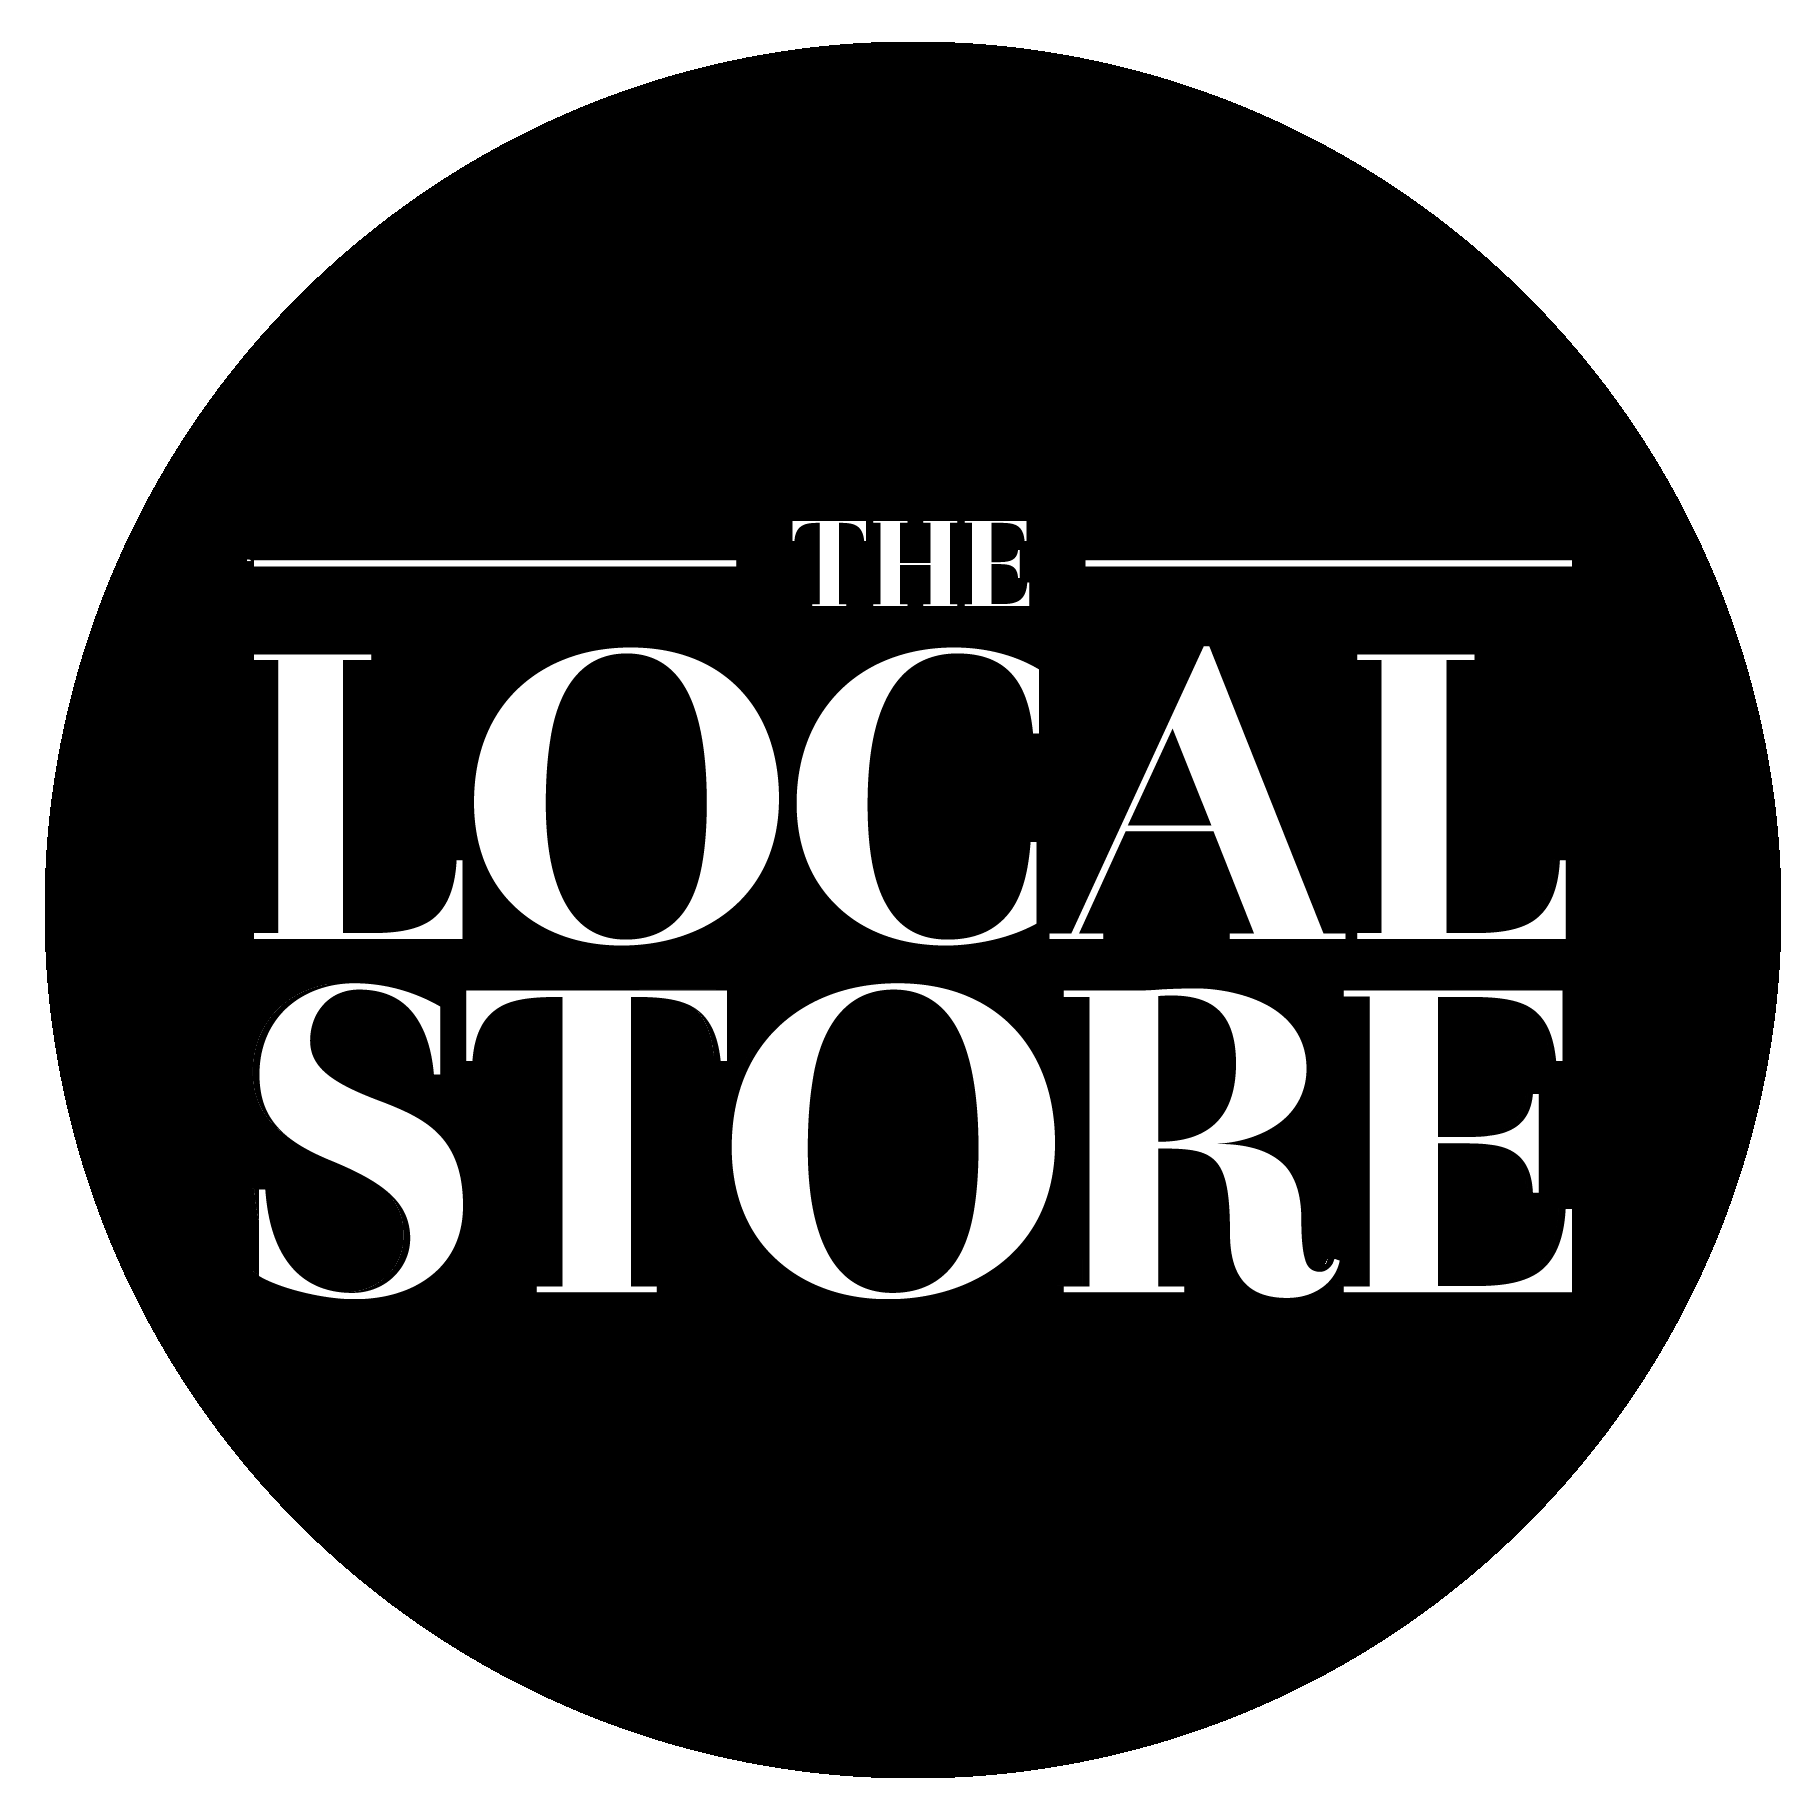 The Local Store - The Local Store Logo